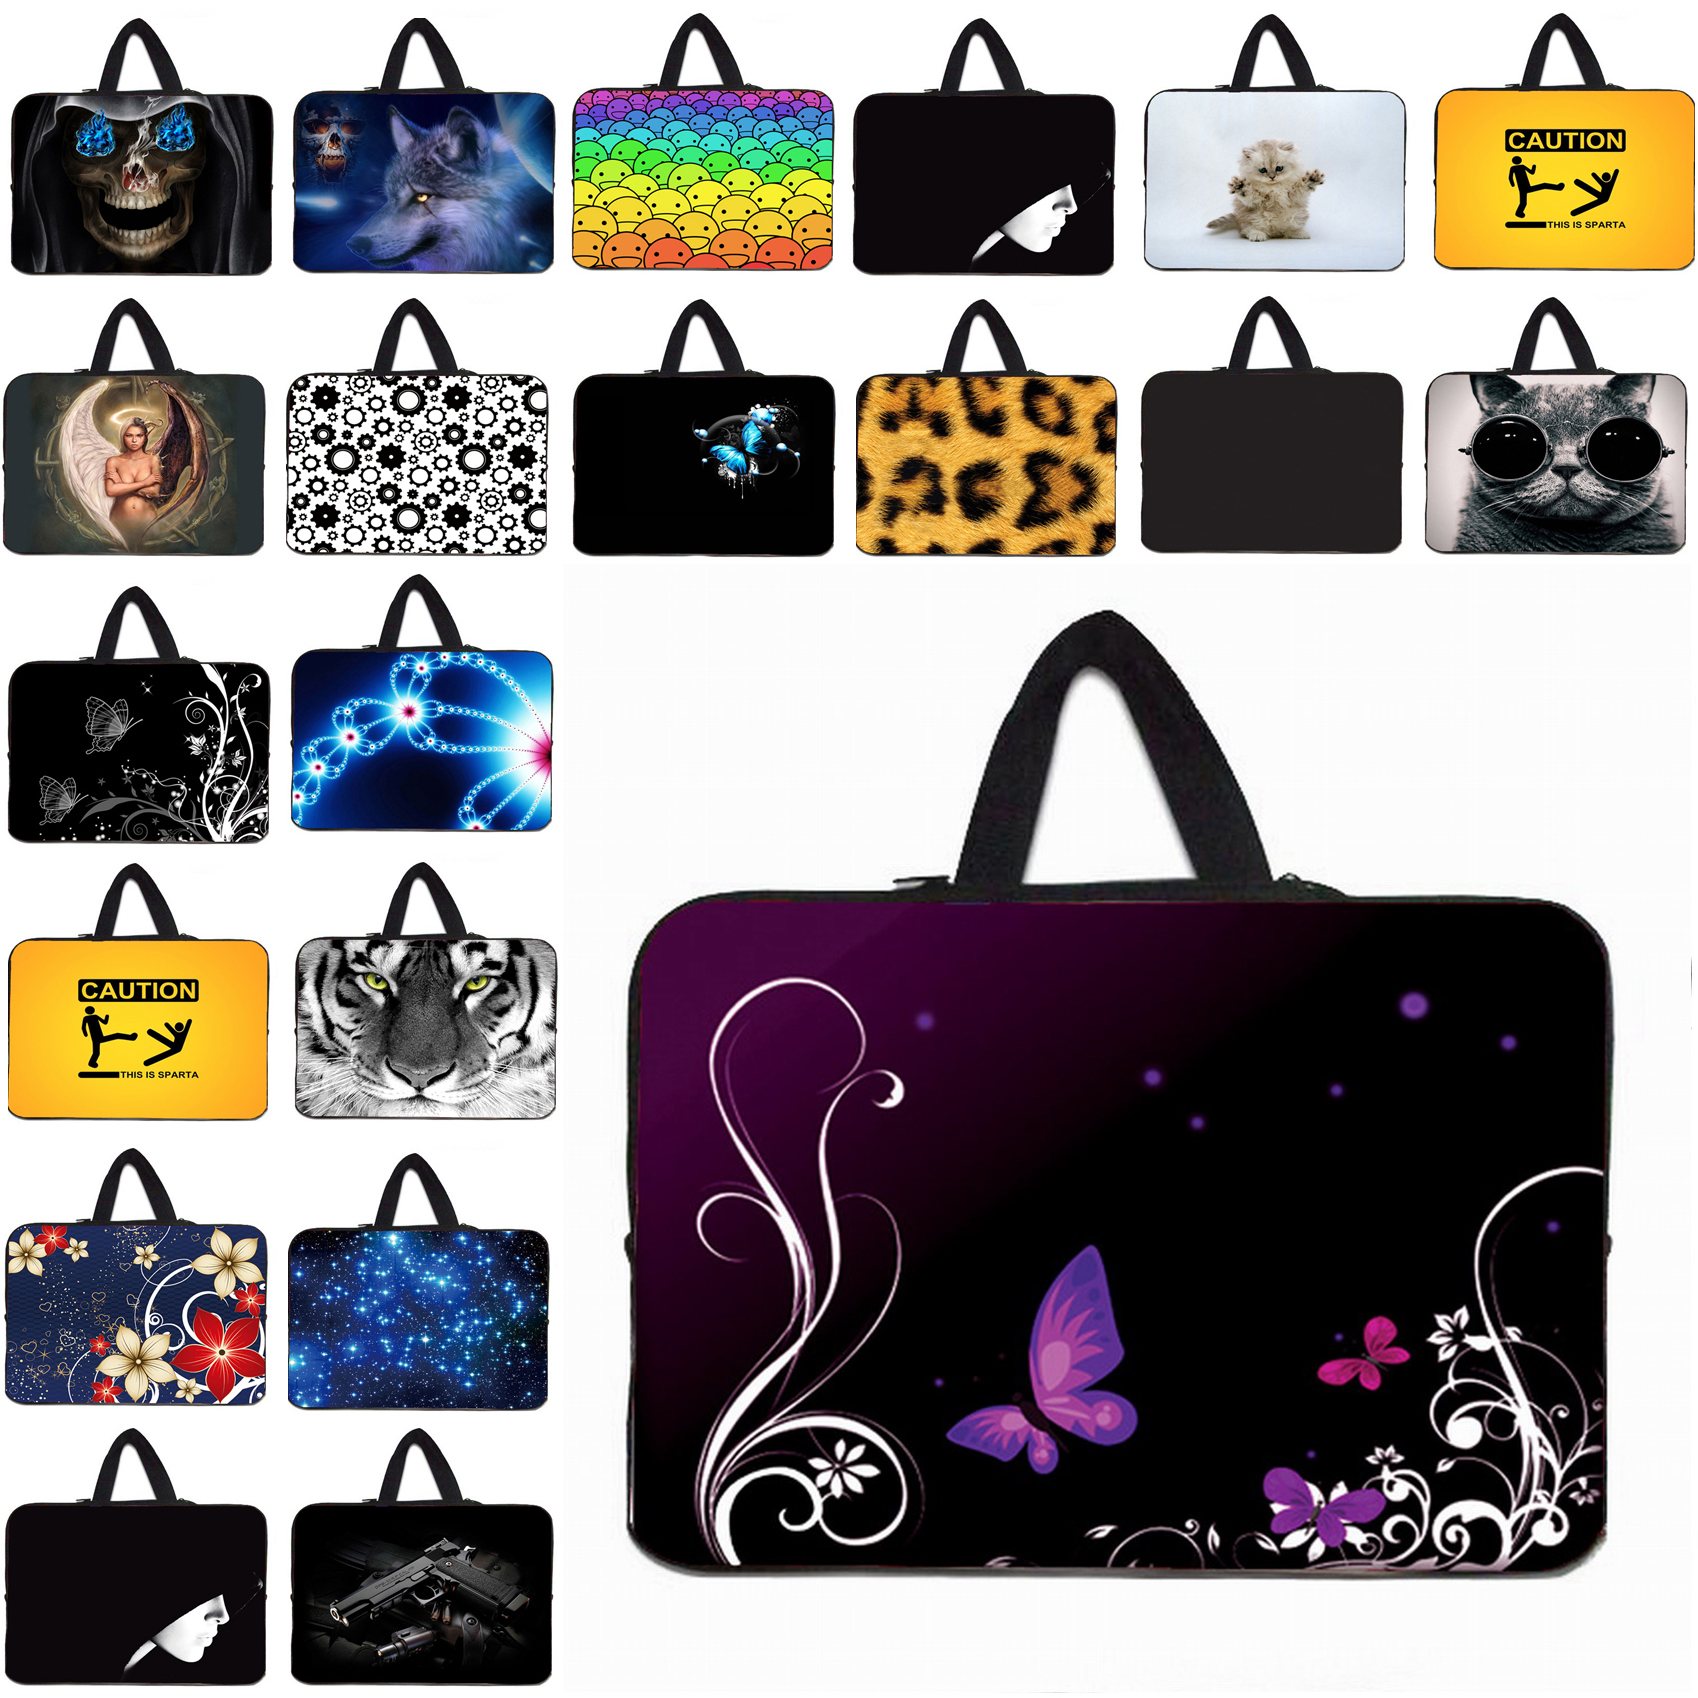 Anti-scratch Neoprene Laptop Bag 13.3 12.8 12.9 13 Protective Briefcase For Apple Macbook Air 13 Mini PC Notebook Pouch Cases